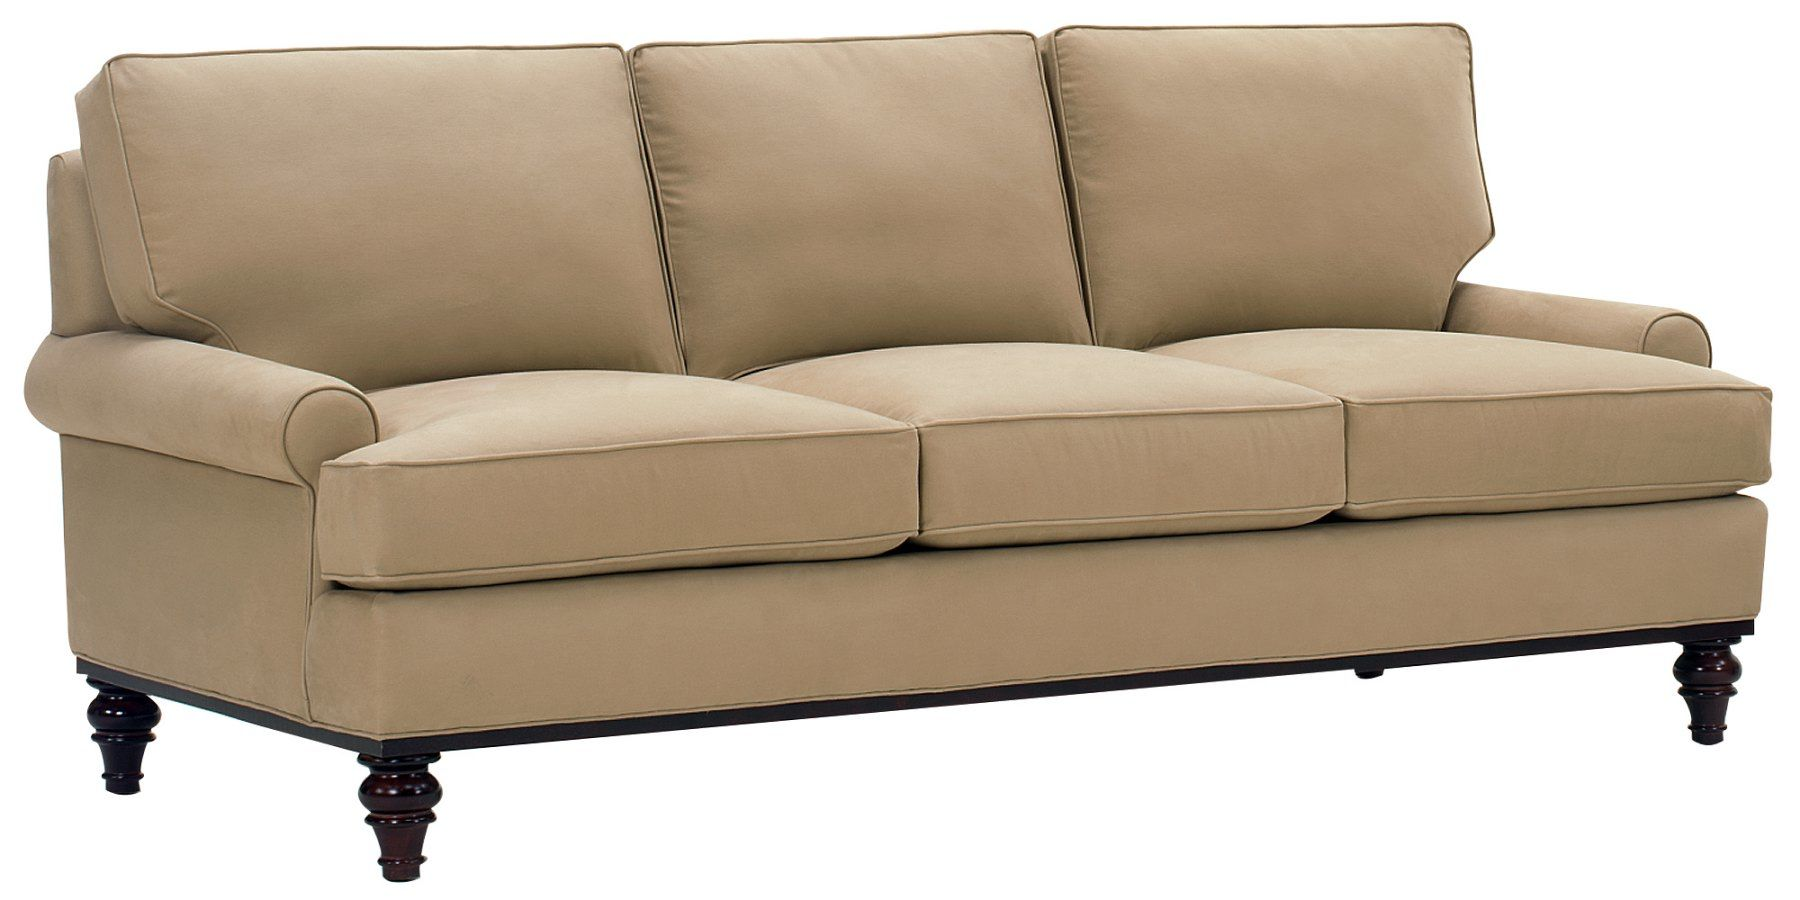 best sofa bed price concept-Lovely sofa Bed Price Construction